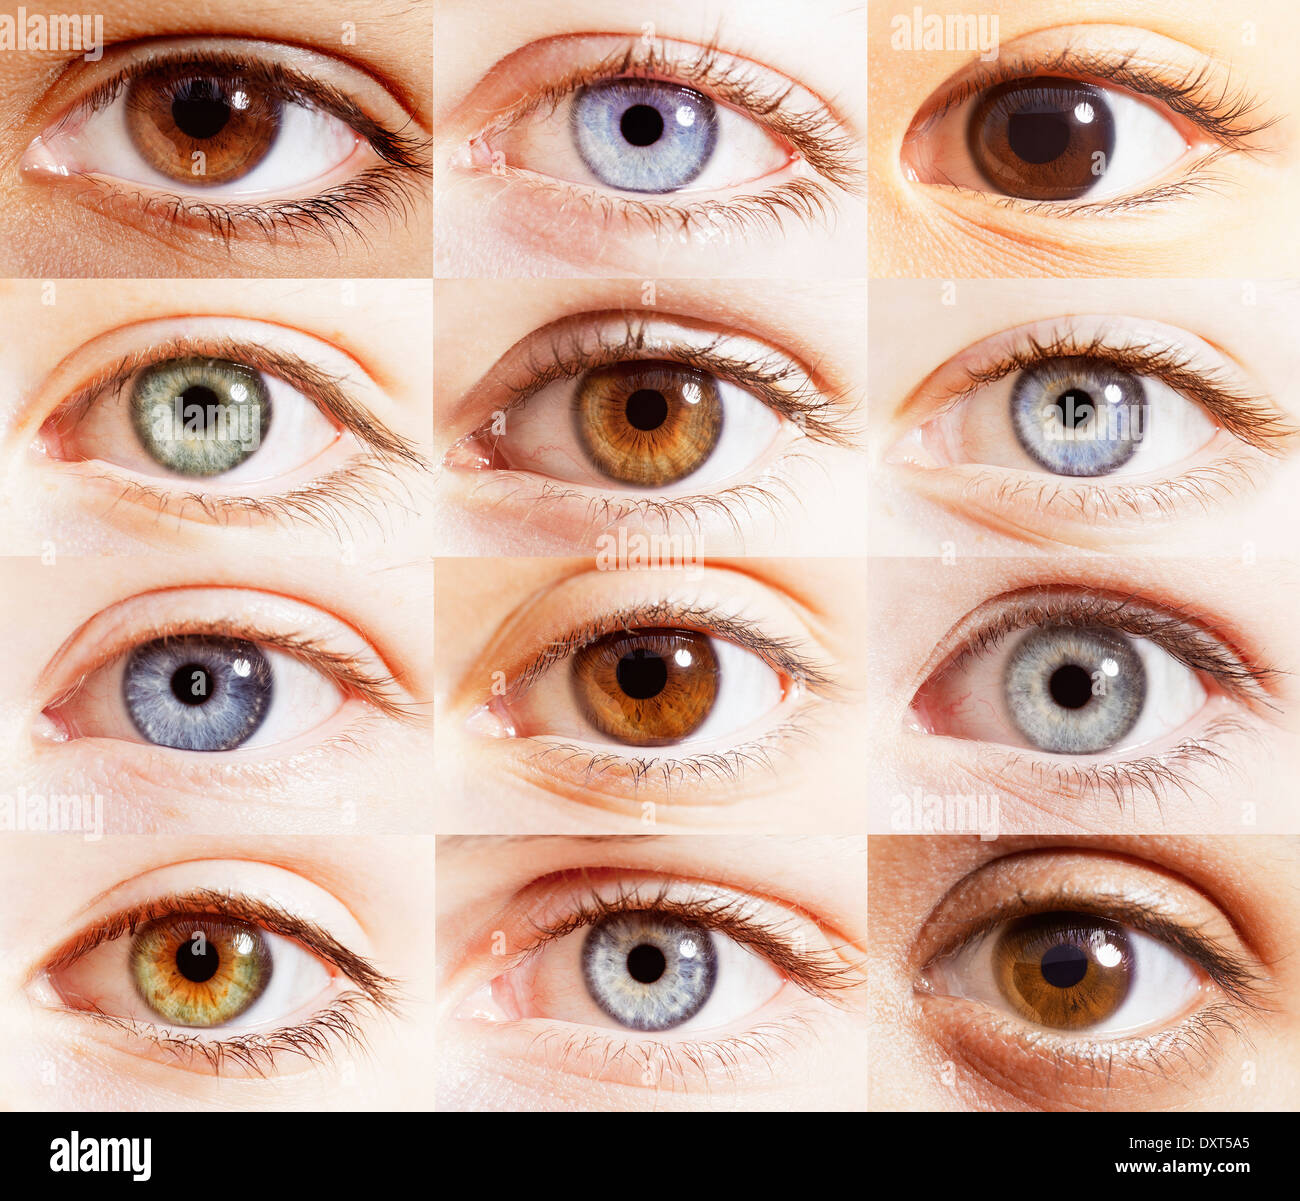 Extreme close up of digital composite of eyes - Stock Image